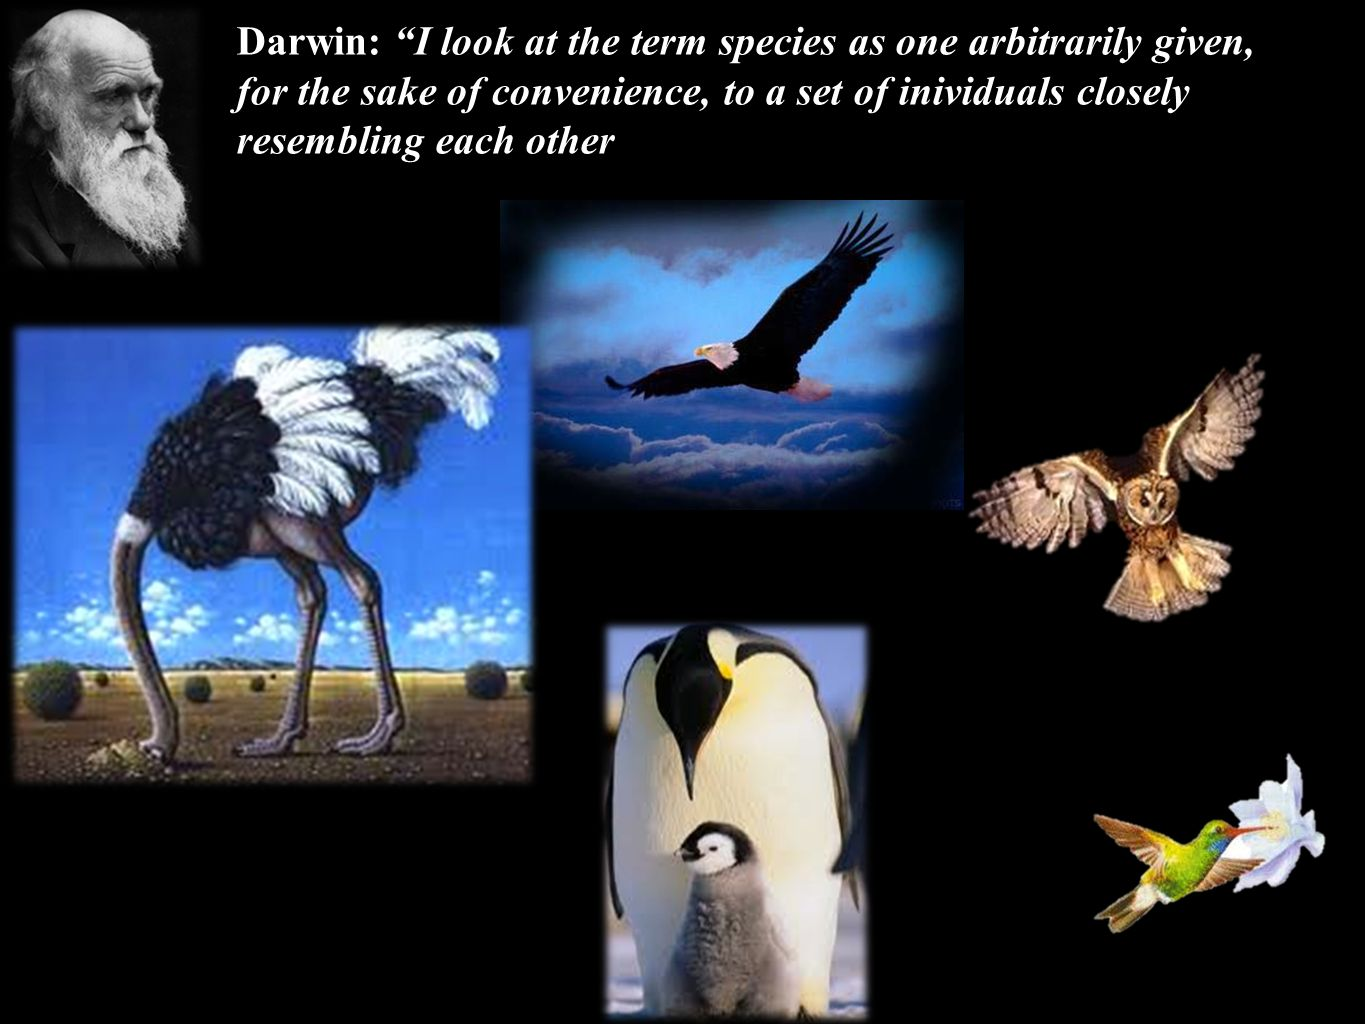 Darwin: I look at the term species as one arbitrarily given, for the sake of convenience, to a set of inividuals closely resembling each other